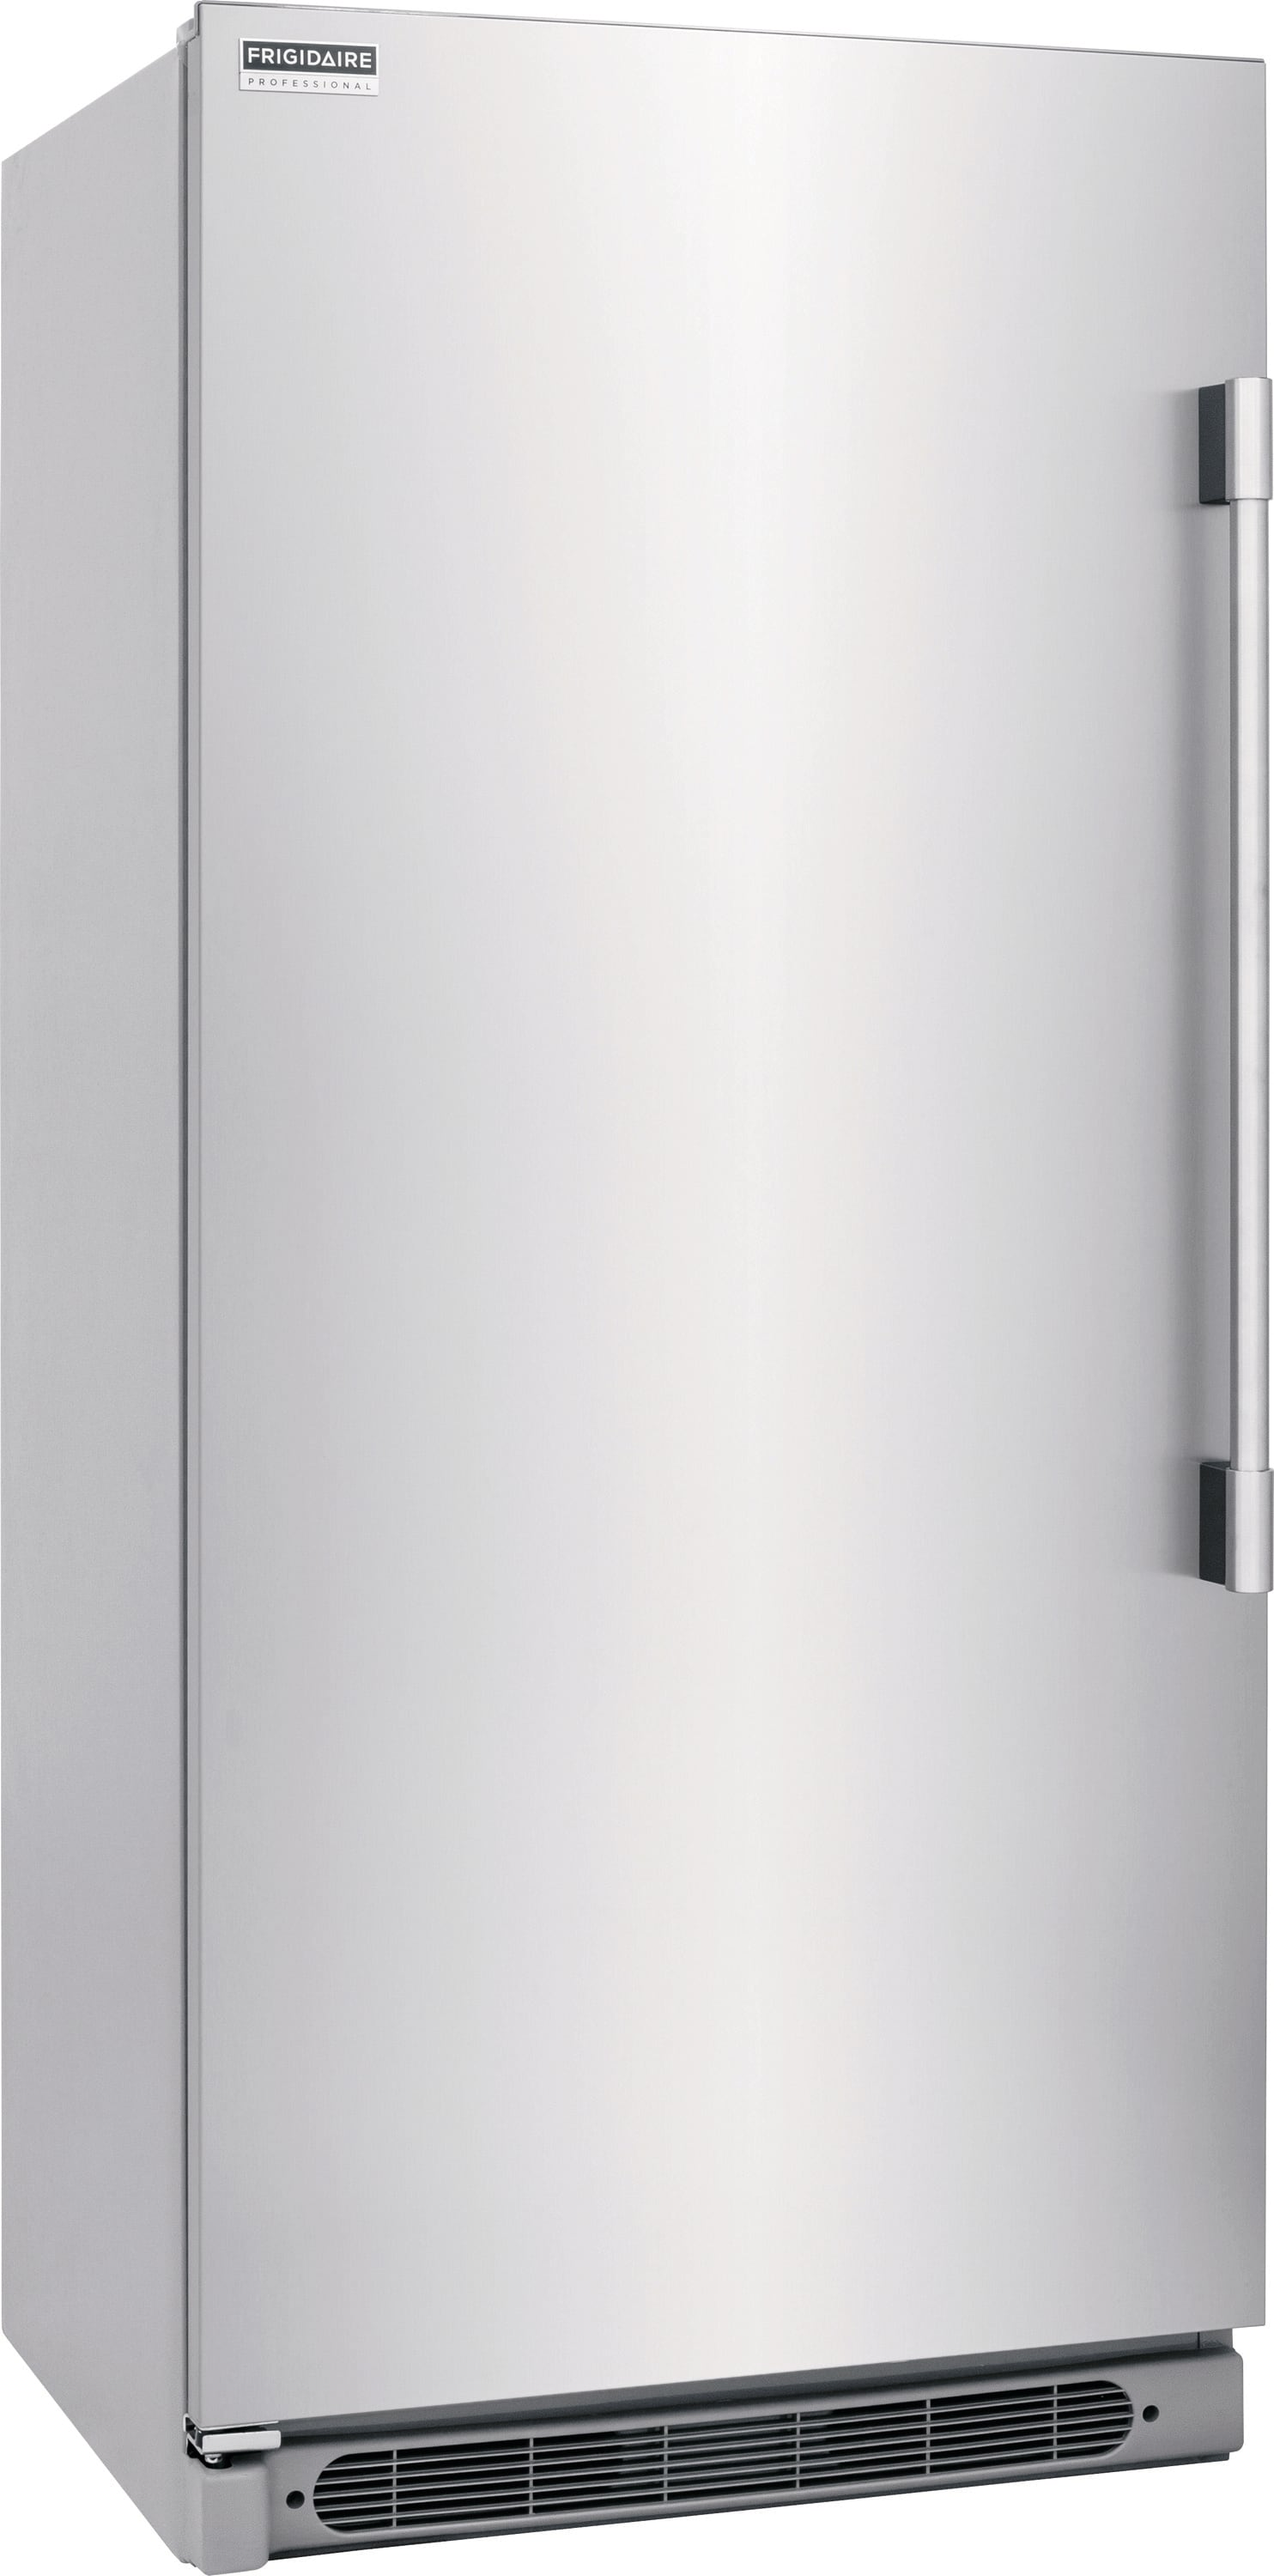 Model: FPFU19F8RF | 19 Cu. Ft. All Freezer